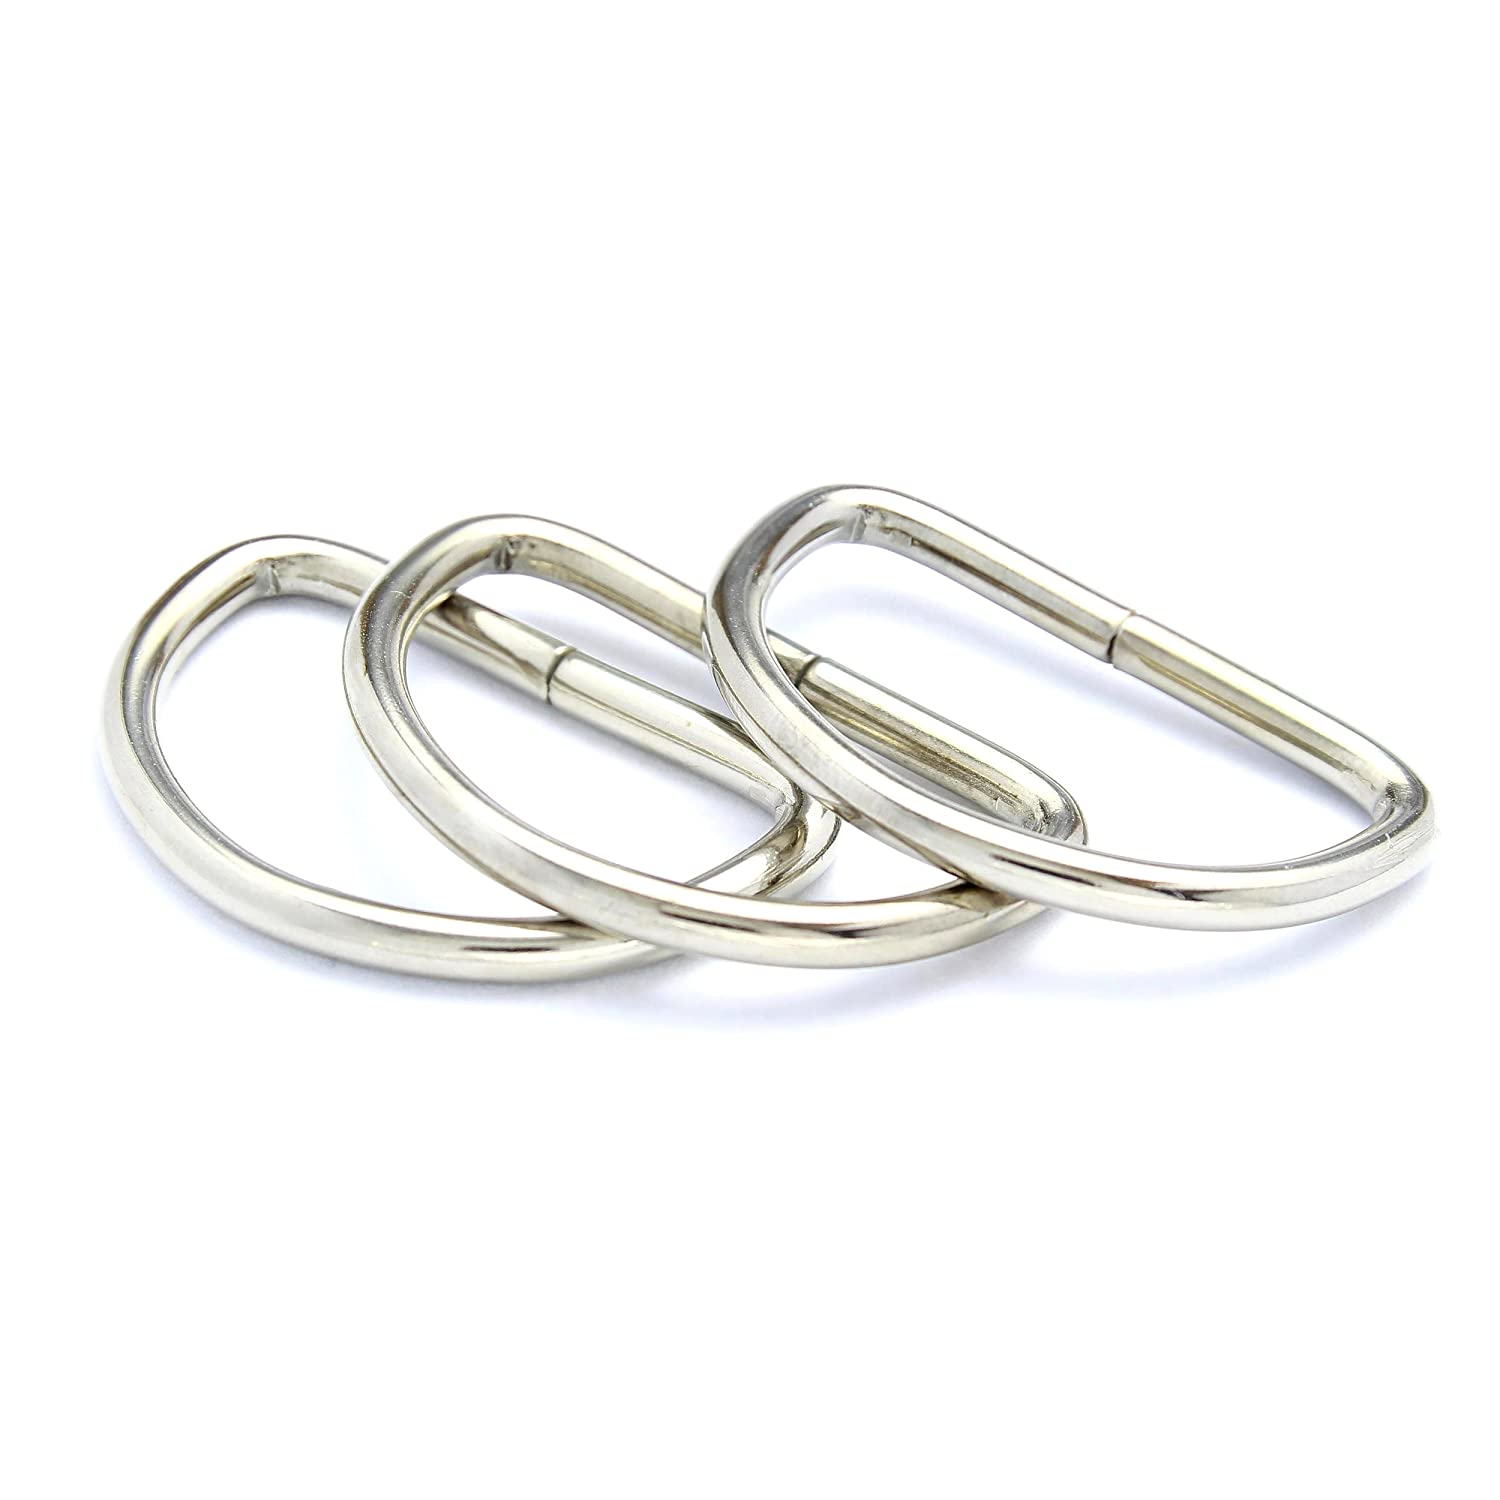 10mm Metal D-Rings Buckles for Webbing Strap Tape, Bags and Purse Handles (10) Sola